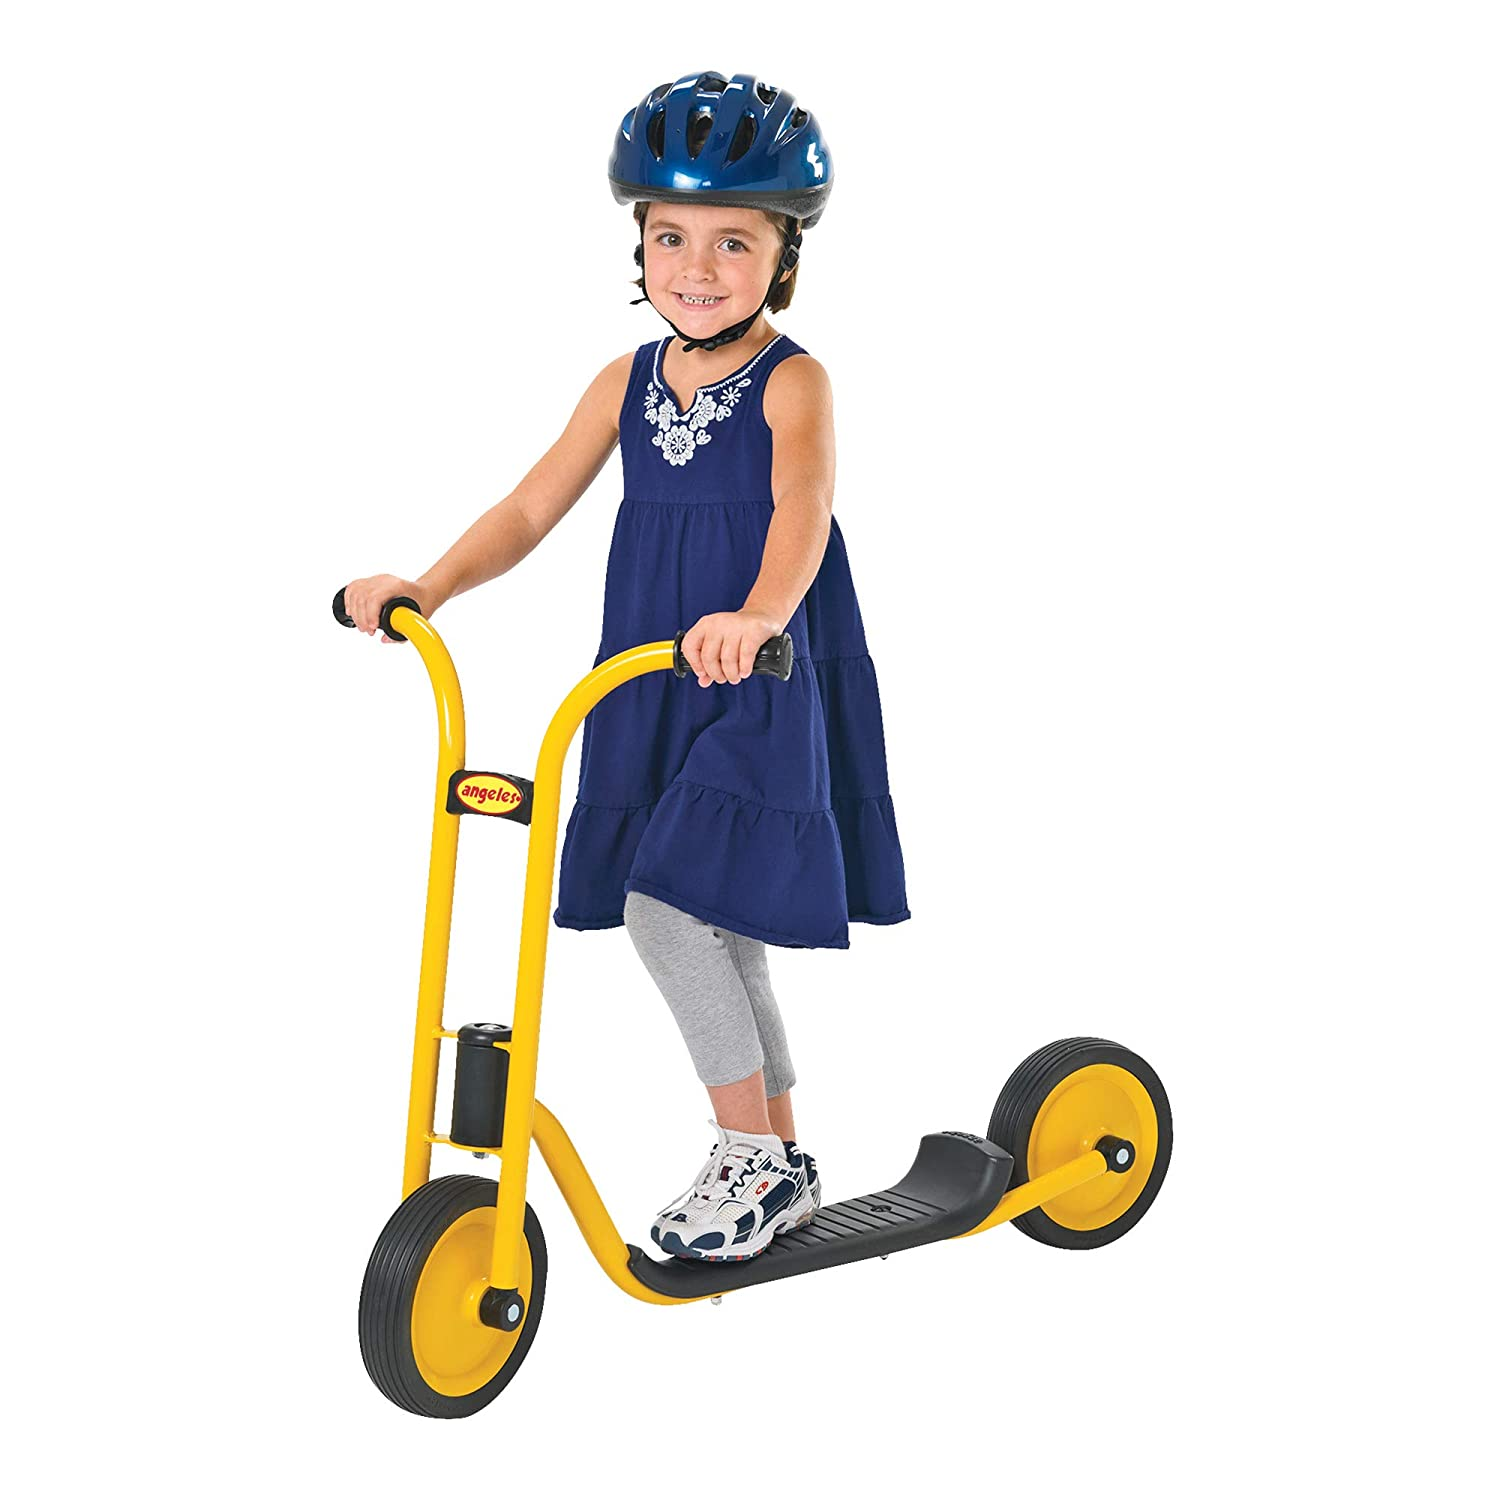 Angeles MyRider Mini Scooter, Yellow for Young Riders Ages 3 , Encourages Active Play, Teaches Balance, Supports Up to 70lbs, Extra-Long Sturdy Footplate, Solid Tires and Built-in Safety Features